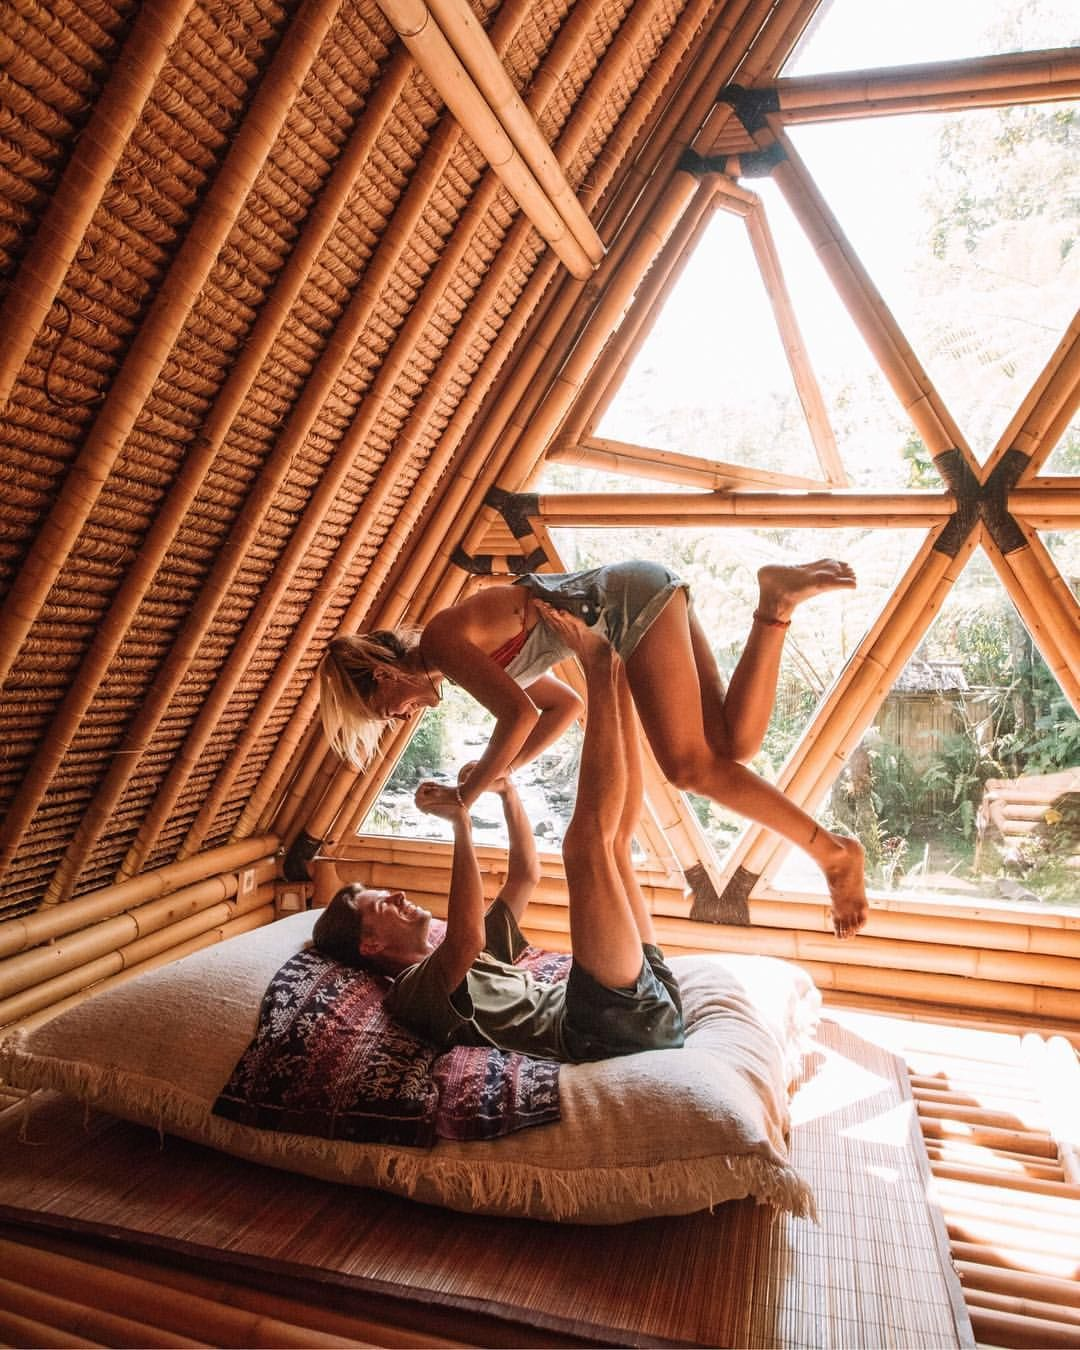 Hideout Bali - Hideout Beehive Bali - Bamboo Home - Quirky Accommodation - Cool Hotels Bali - Bali Swing - Instagram Spots Bali - East Bali Indonesia - Wanderers & Warriors - Charlie & Lauren UK Travel Couple - Rice Terraces - Rice Fields - Sunrise Sunset - Dress - Style - Cap - Boyfriend - Girlfriend - Palm Trees